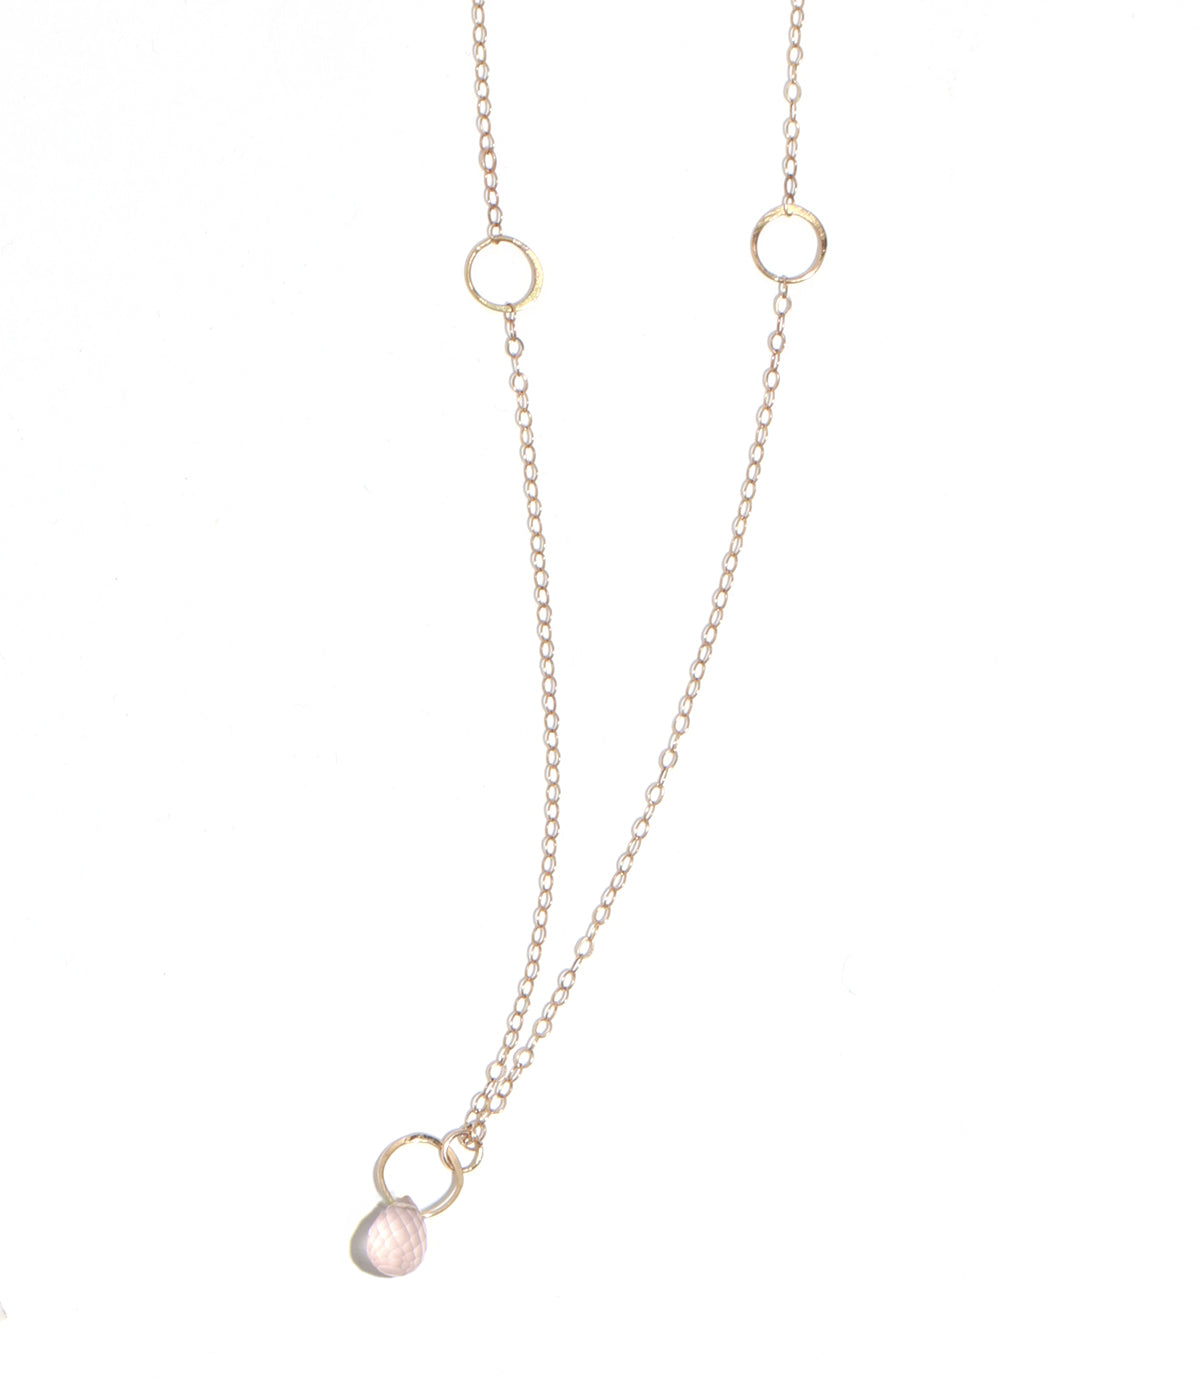 Rose Quartz single drop necklace - Melissa Joy Manning Jewelry